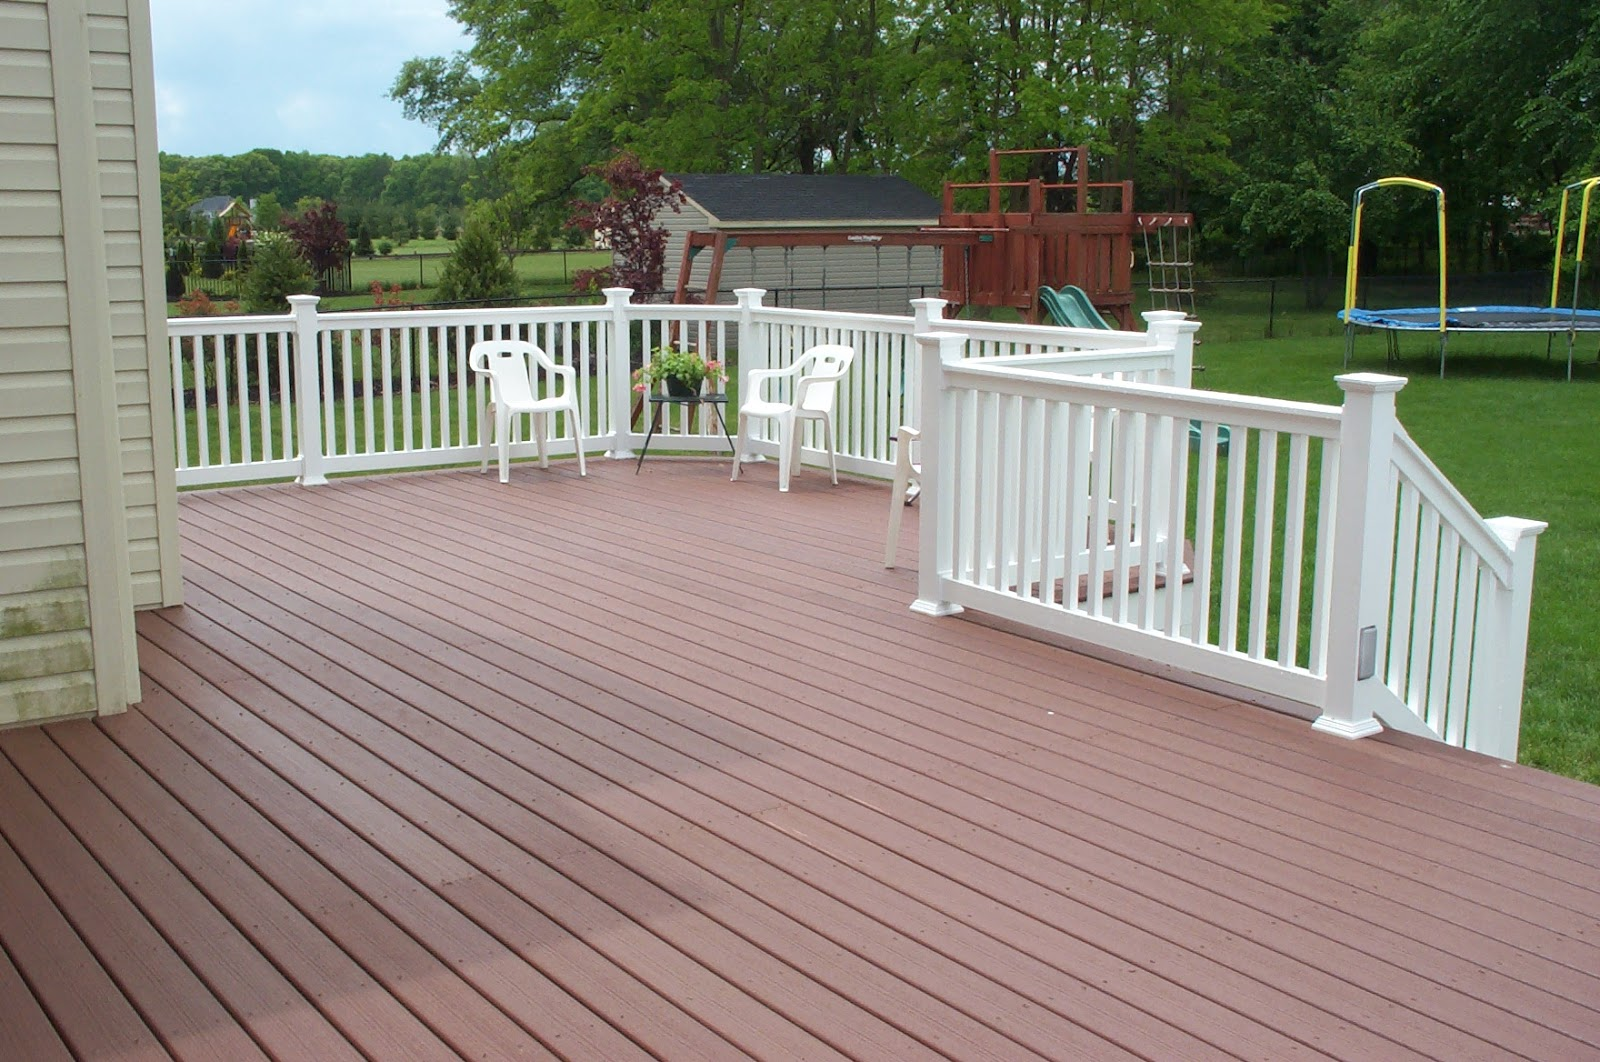 Real estate amarillo home sellers a deck may make the - Deck ideas for home ...